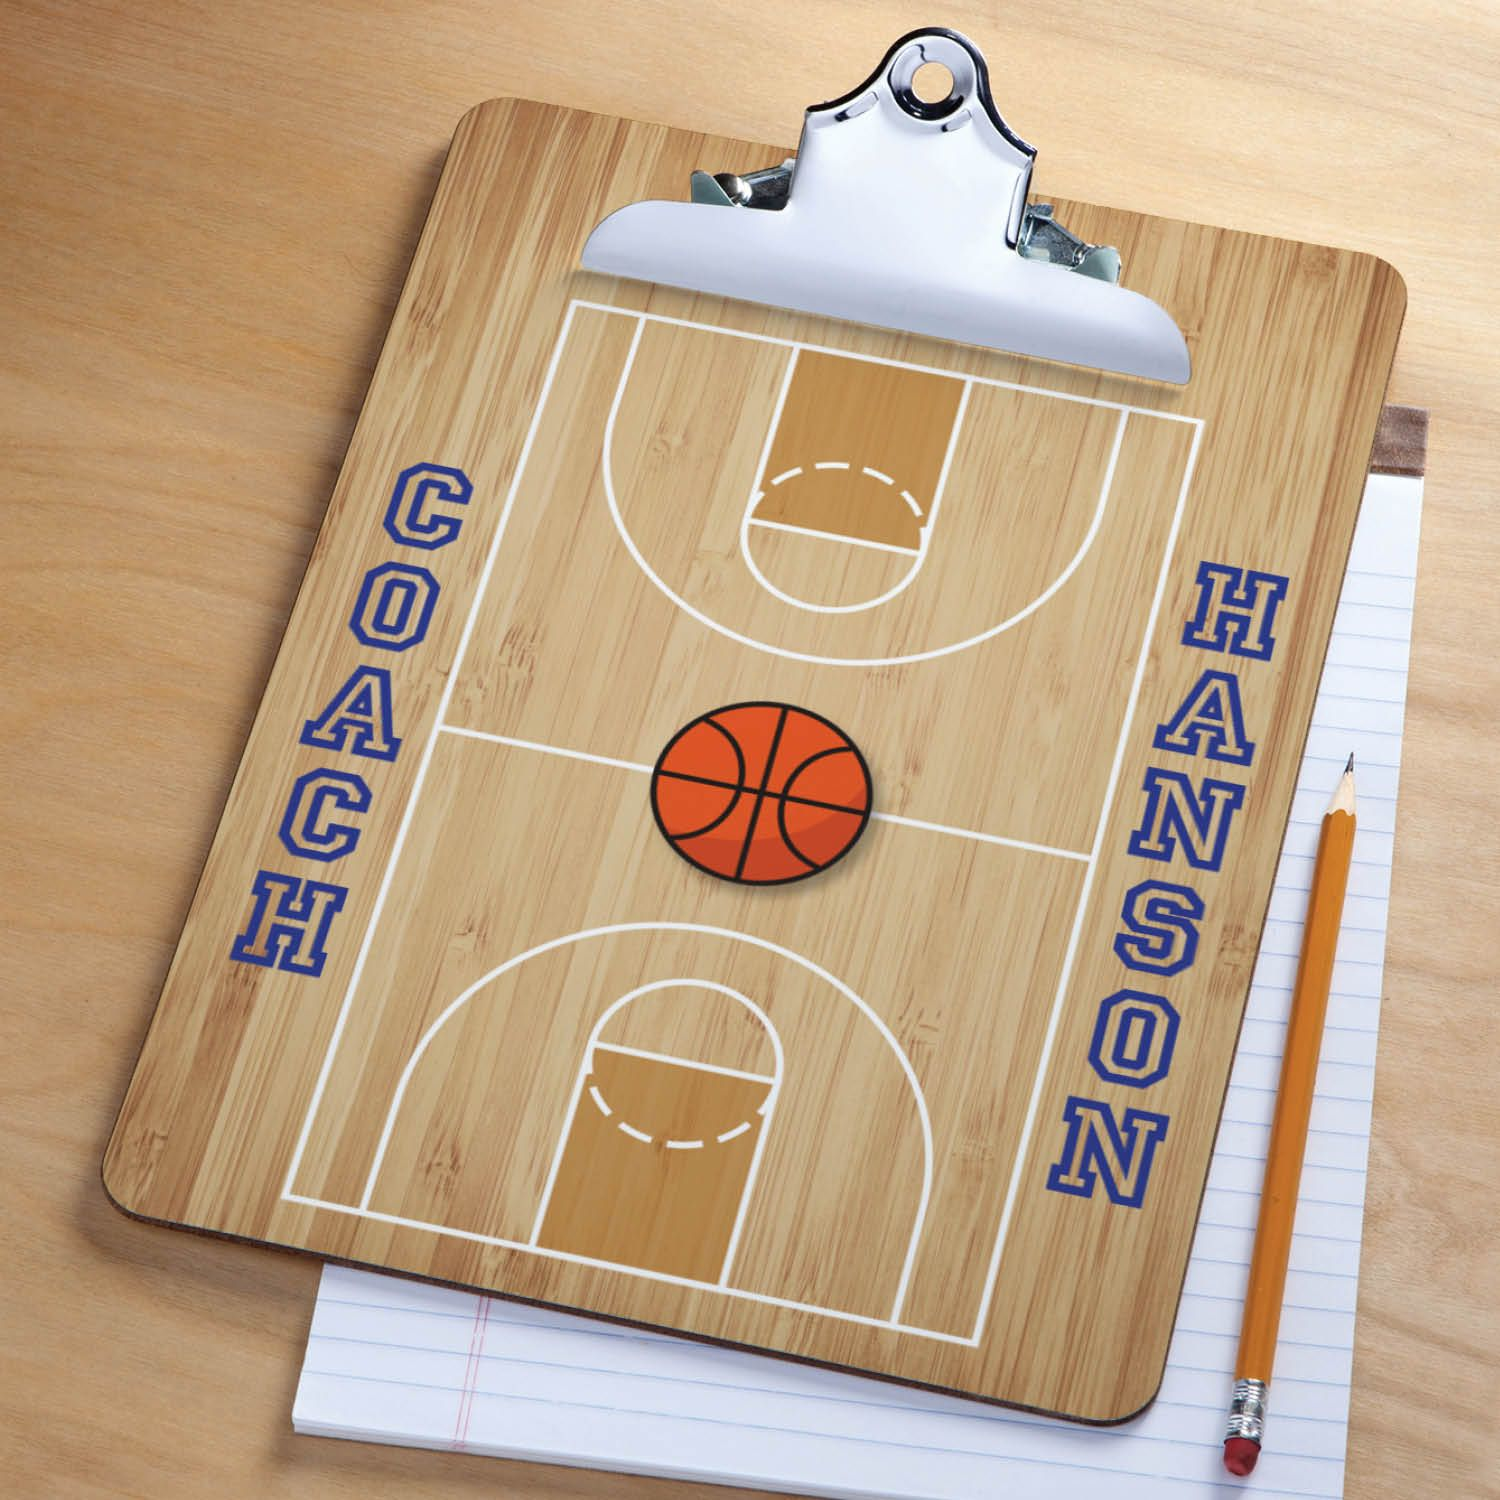 Our personalized clipboard makes a great gift